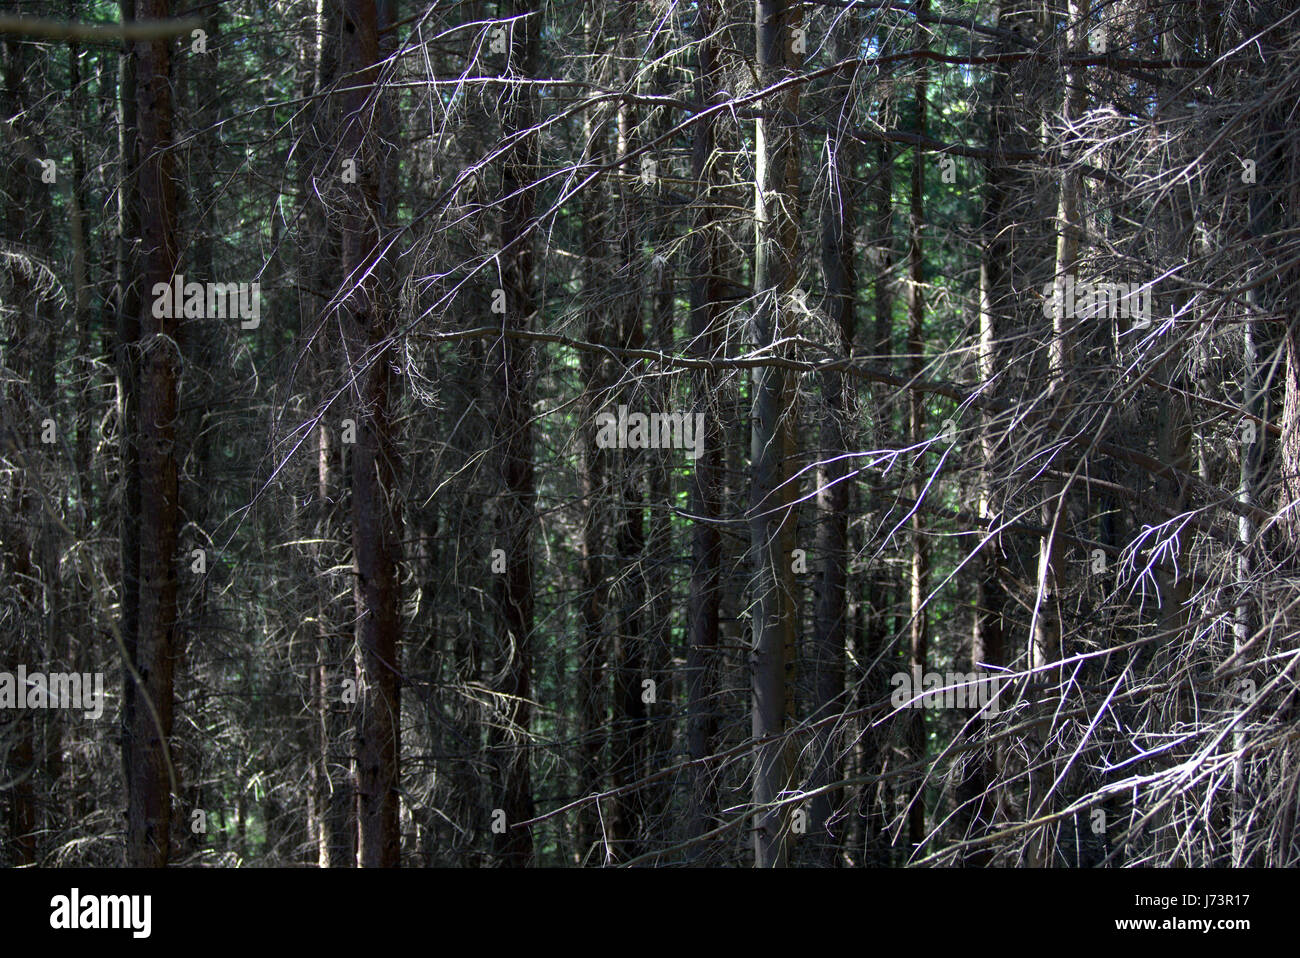 Chatelherault Country Park dense forest woofs background - Stock Image